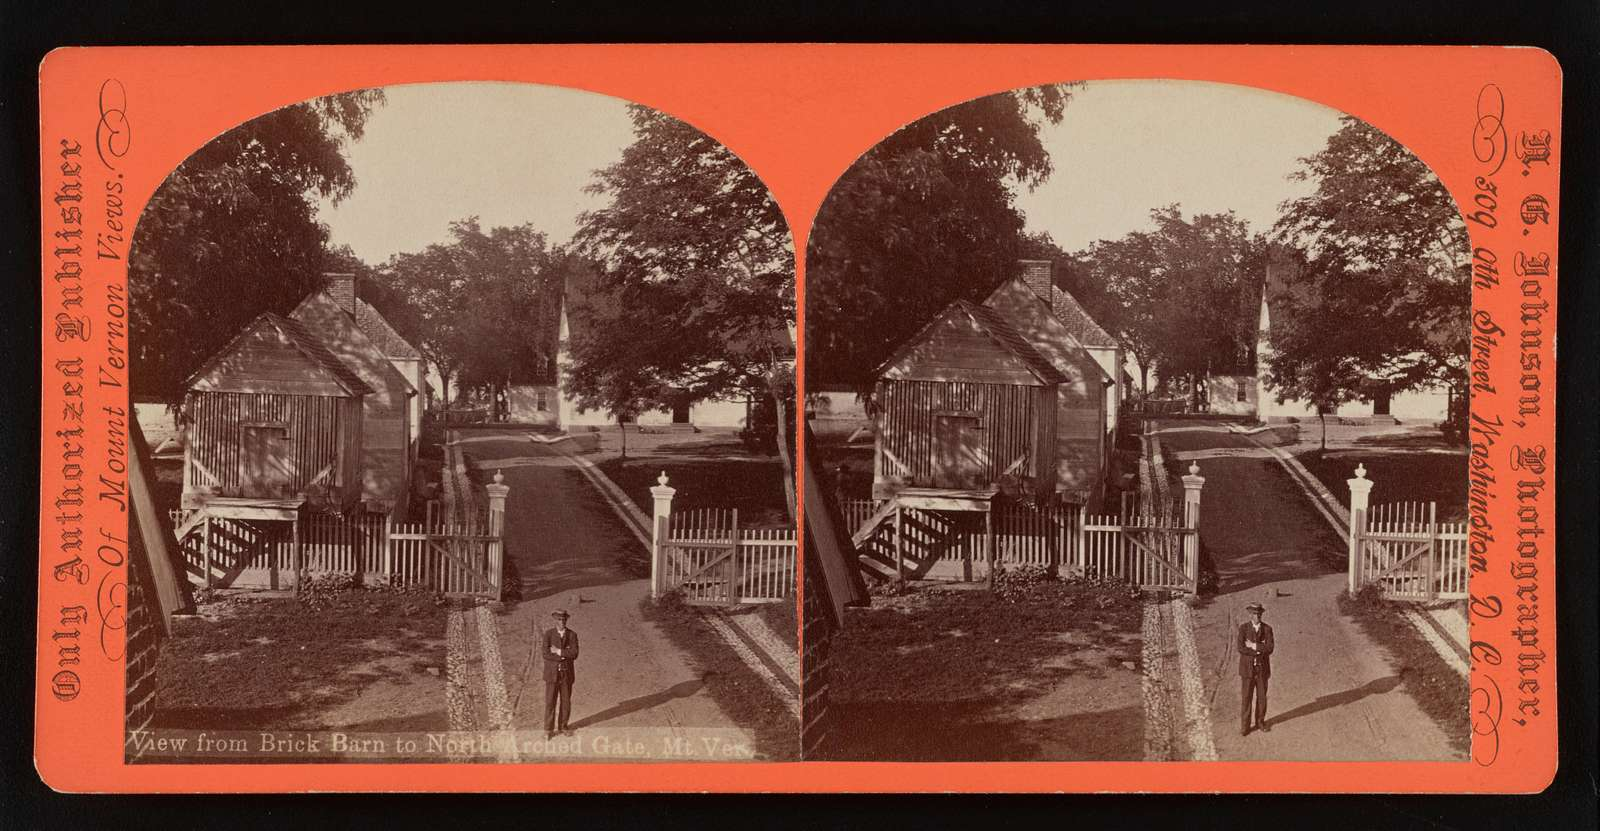 View from old brick barn to the north arched gate showing the butler's house, old family kitchen and the Supts. office